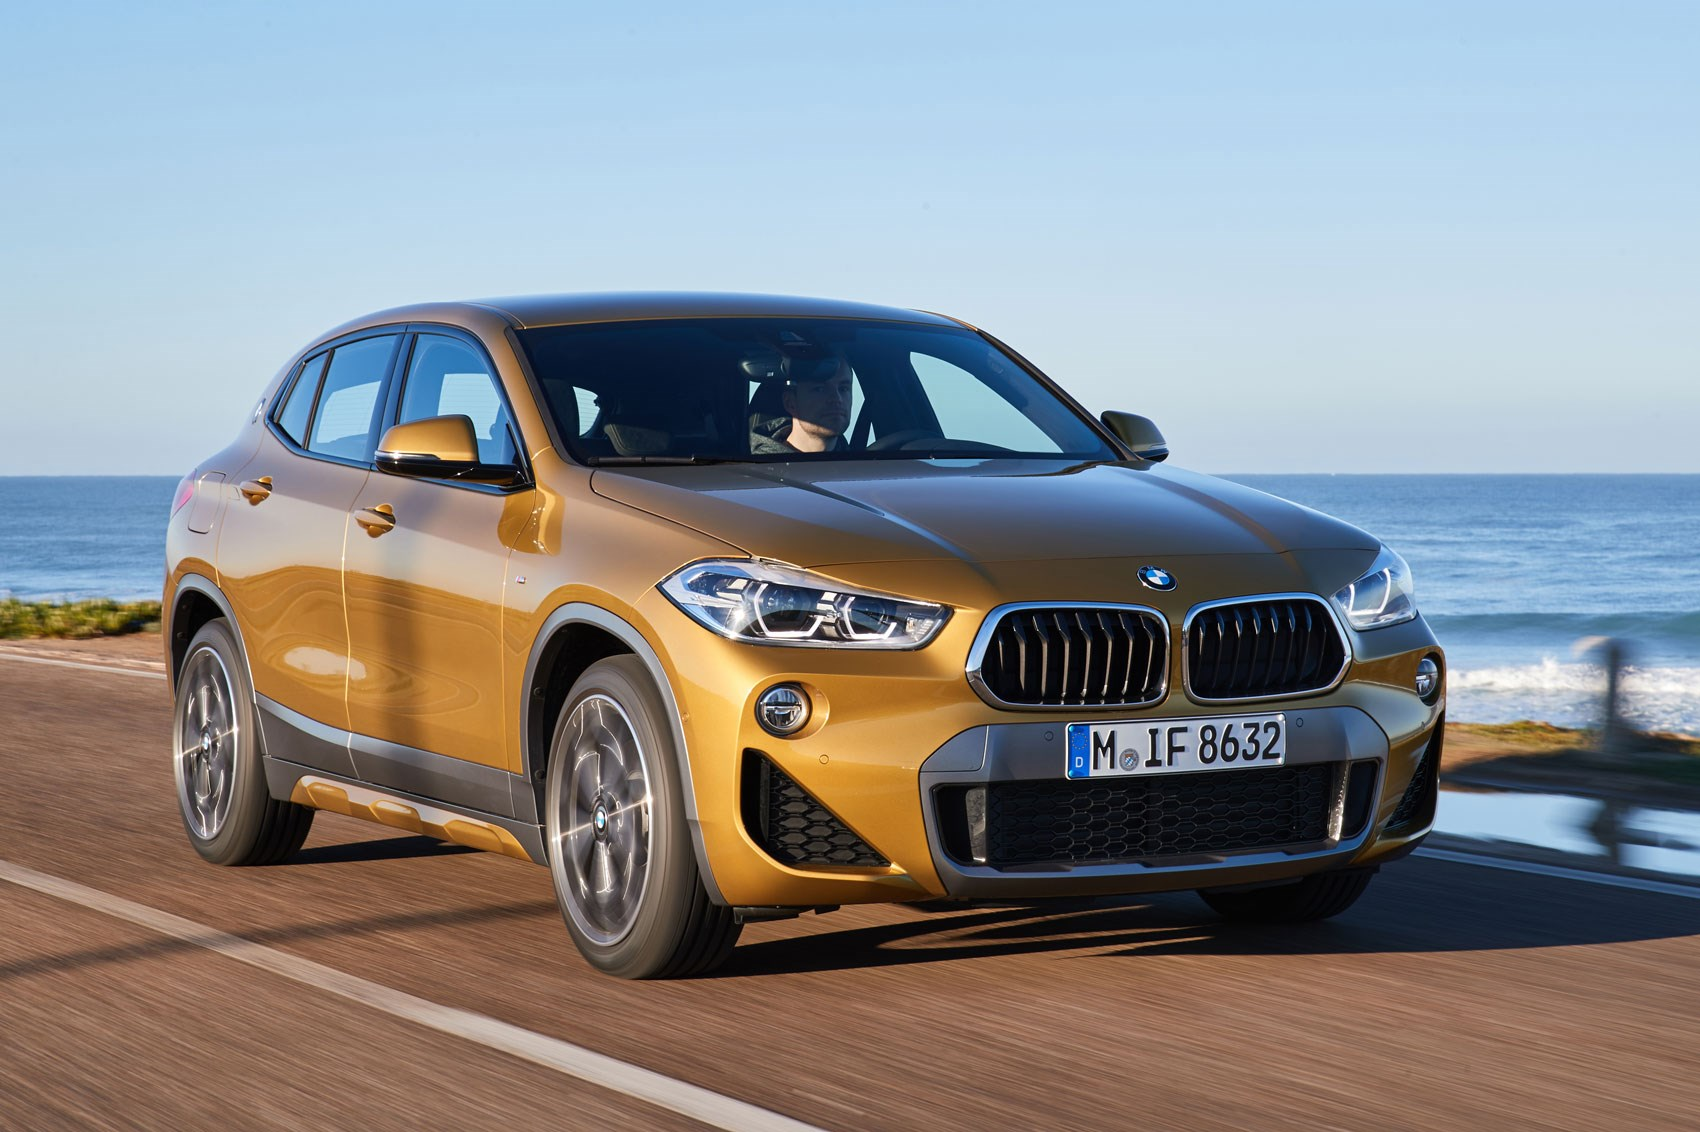 bmw x2 xdrive20d m sport x 2018 review car magazine. Black Bedroom Furniture Sets. Home Design Ideas